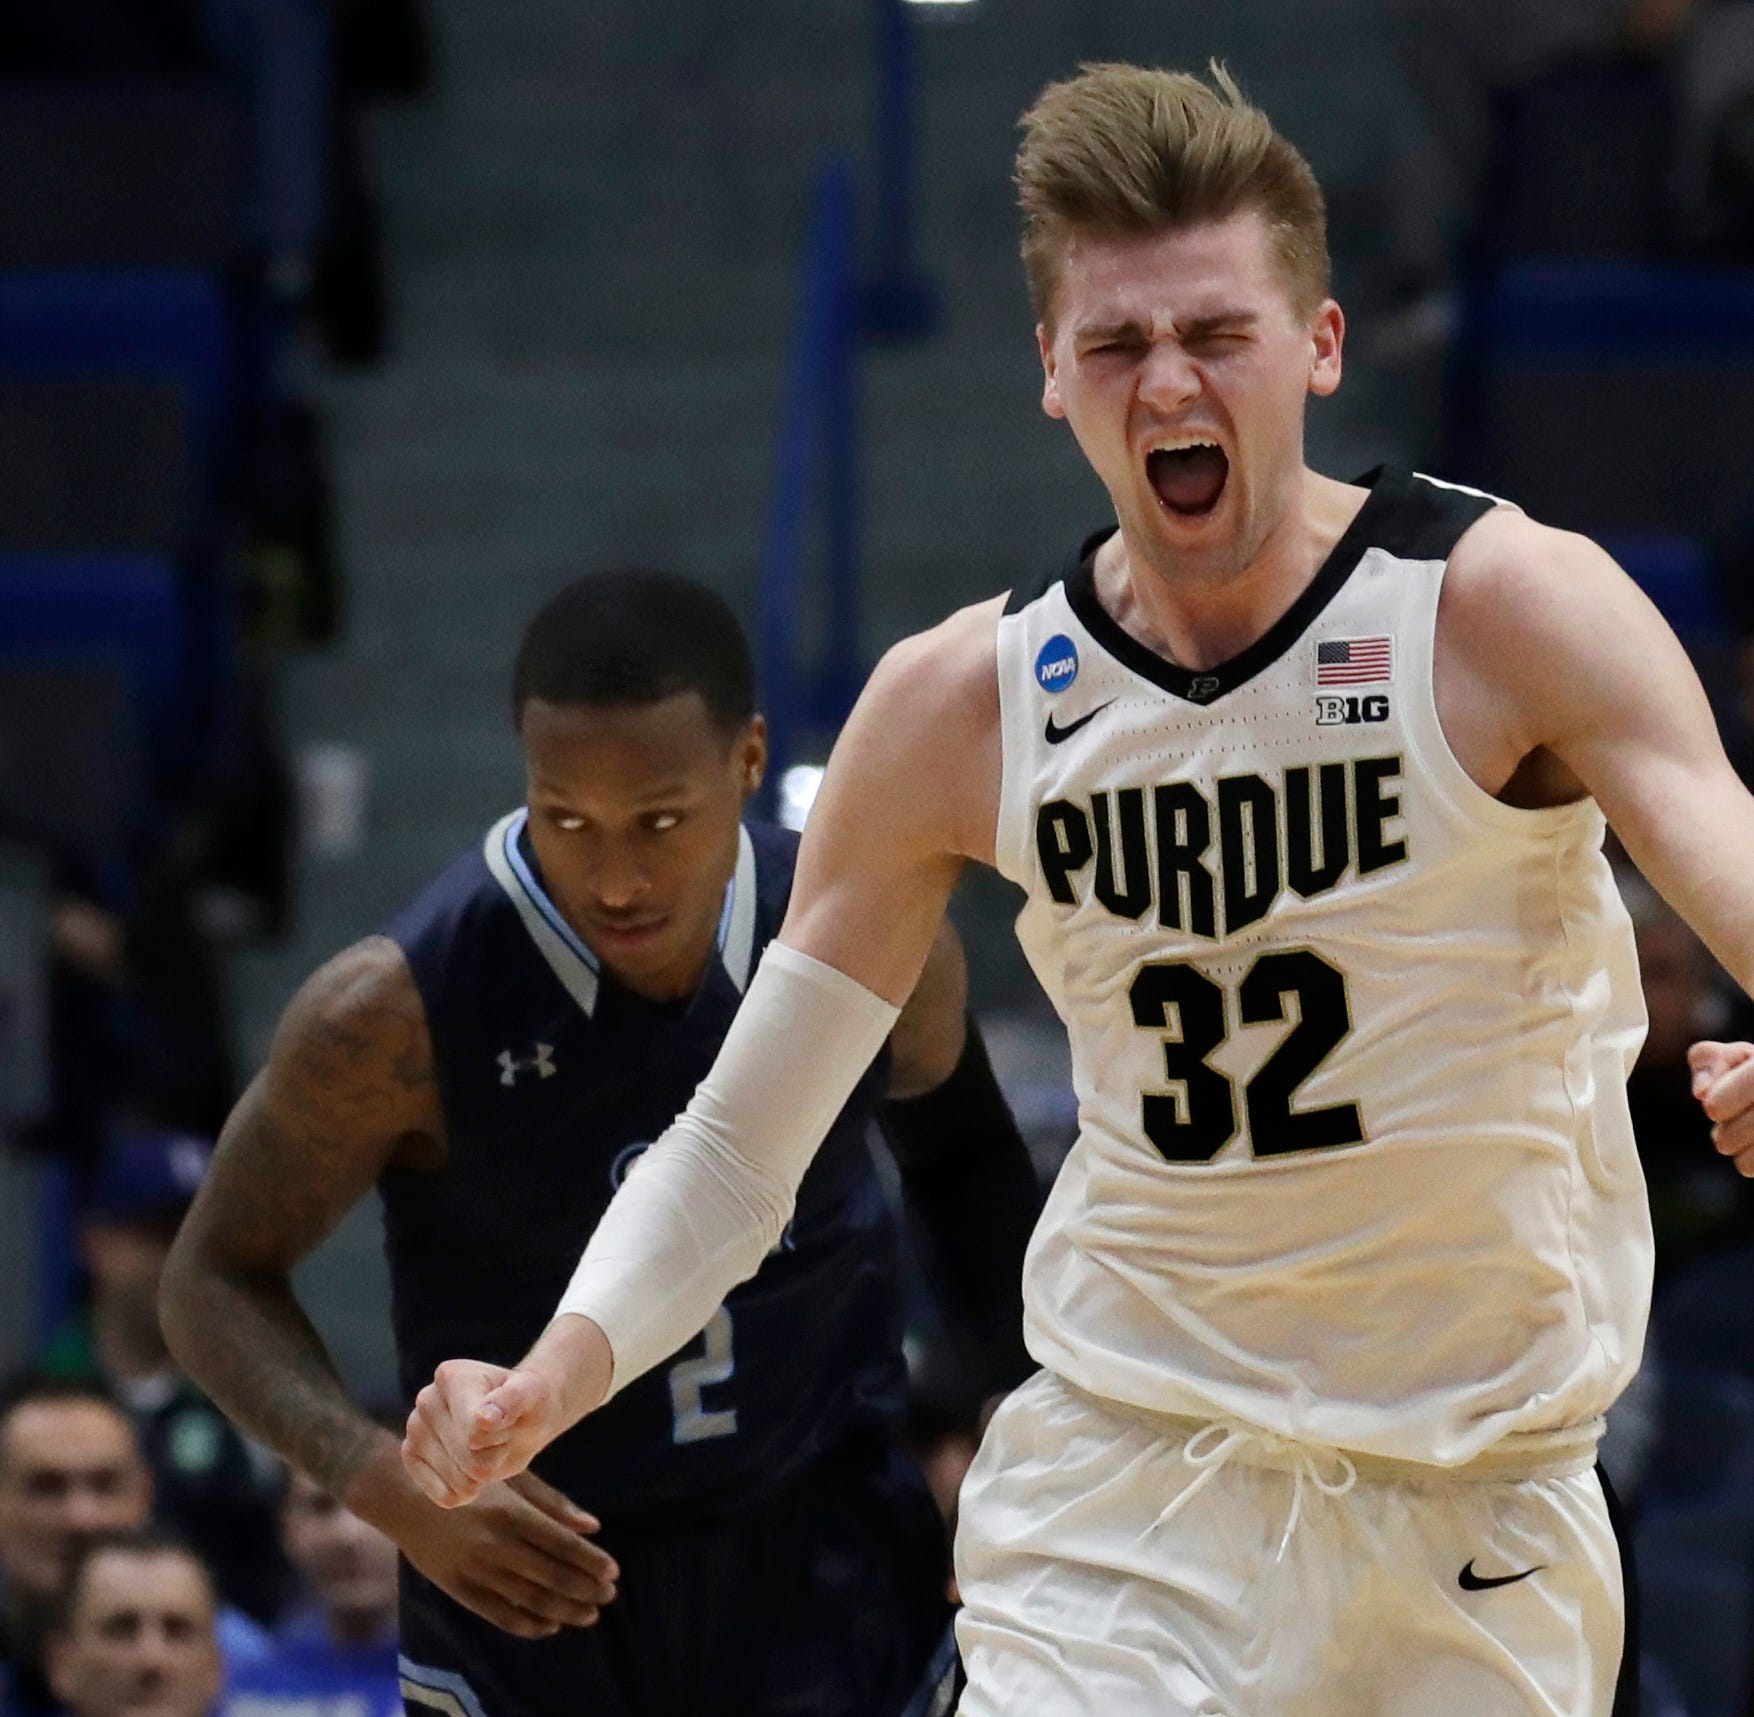 Purdue vs. Villanova live blog: Updates, reaction, stats and more